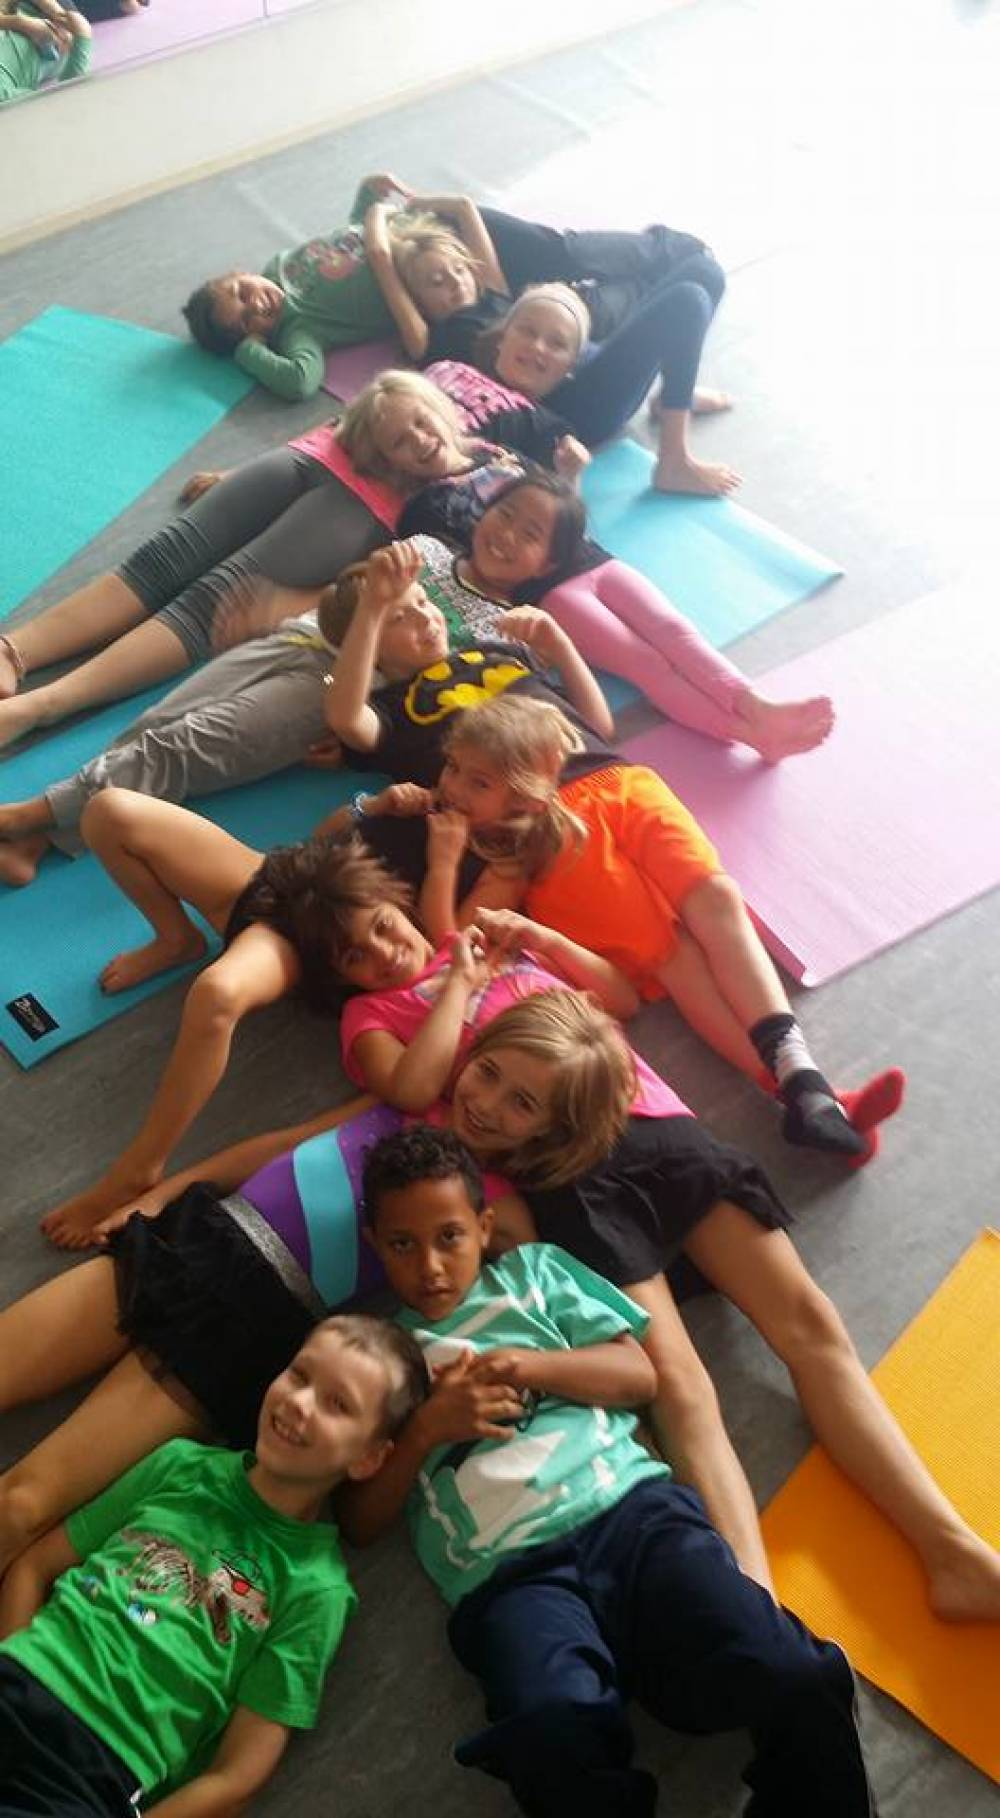 TOP MINNESOTA SUMMER CAMP: Camp JUST DANCE at Dance-N-Magic is a Top Summer Camp located in St. Paul Minnesota offering many fun and enriching camp programs.